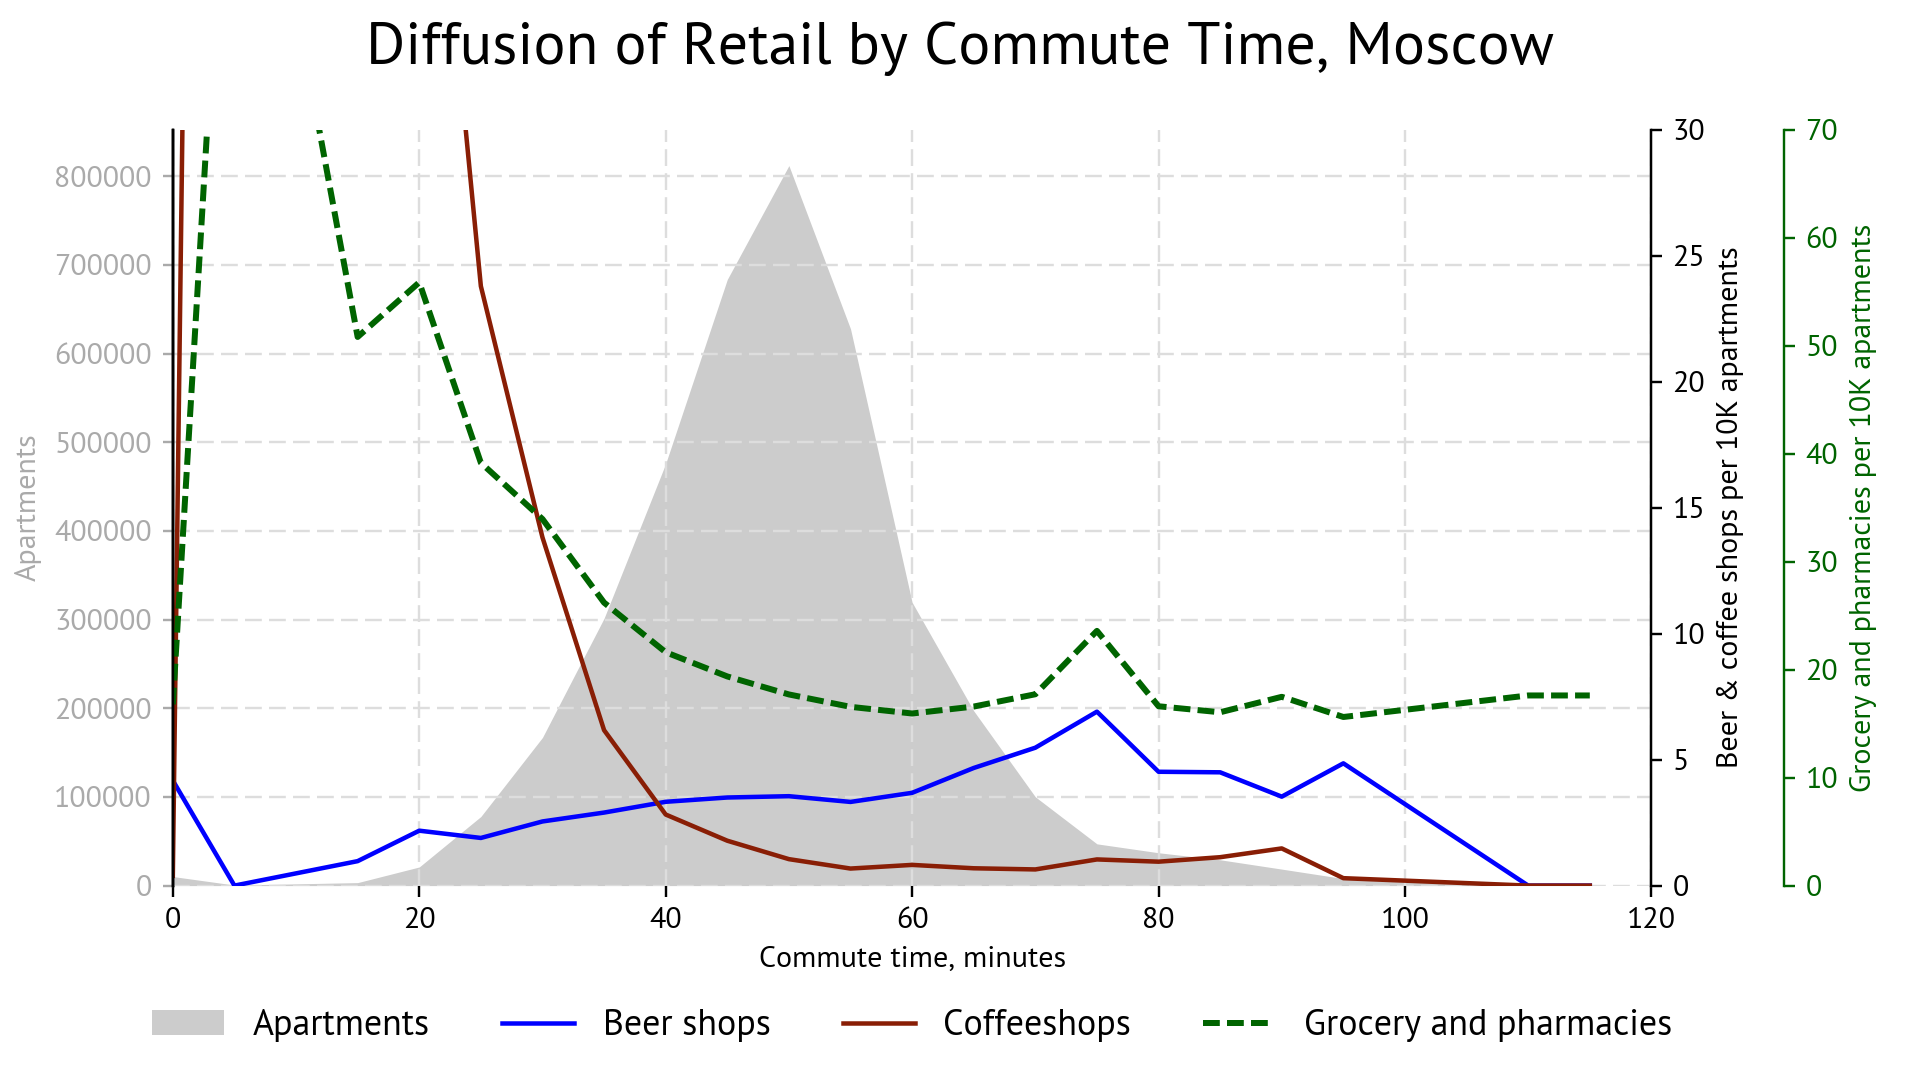 Chart: Retail diffusion at different commute times, Moscow